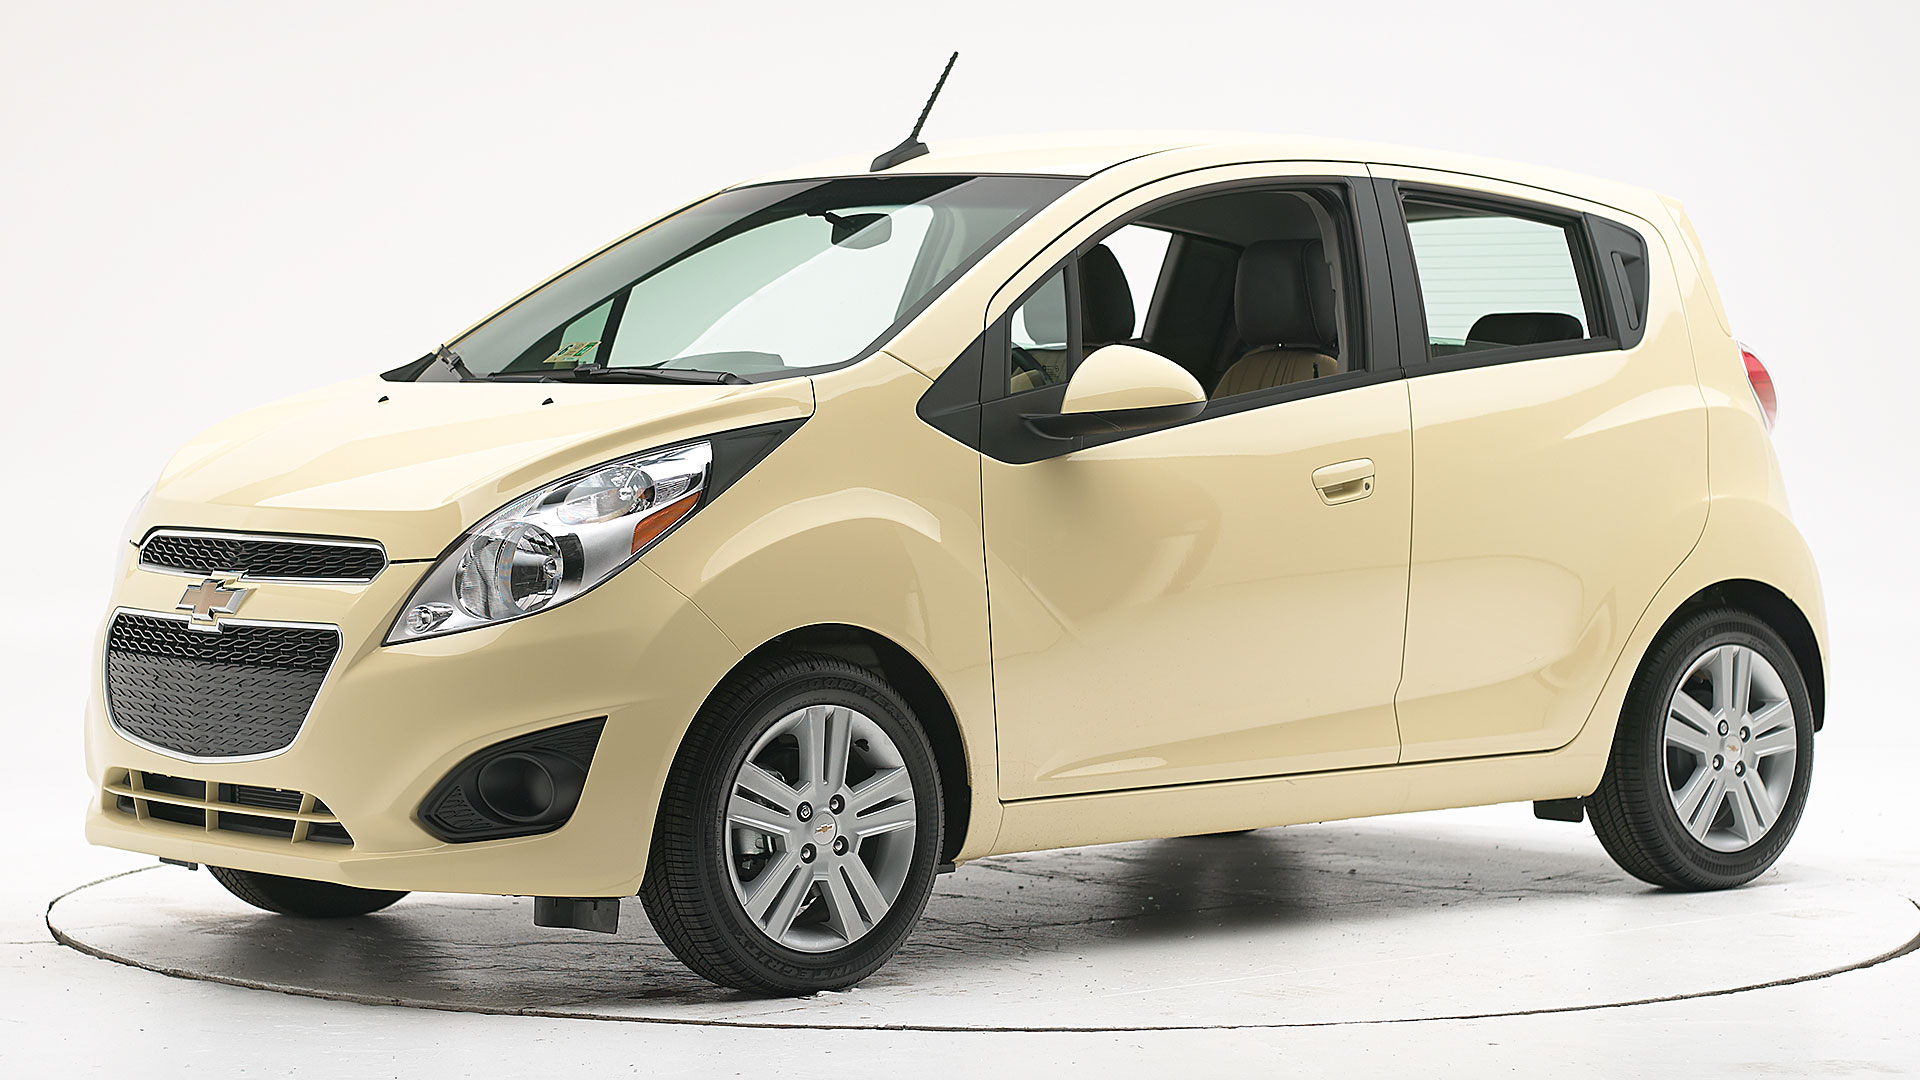 2015 Chevrolet Spark 4-door hatchback